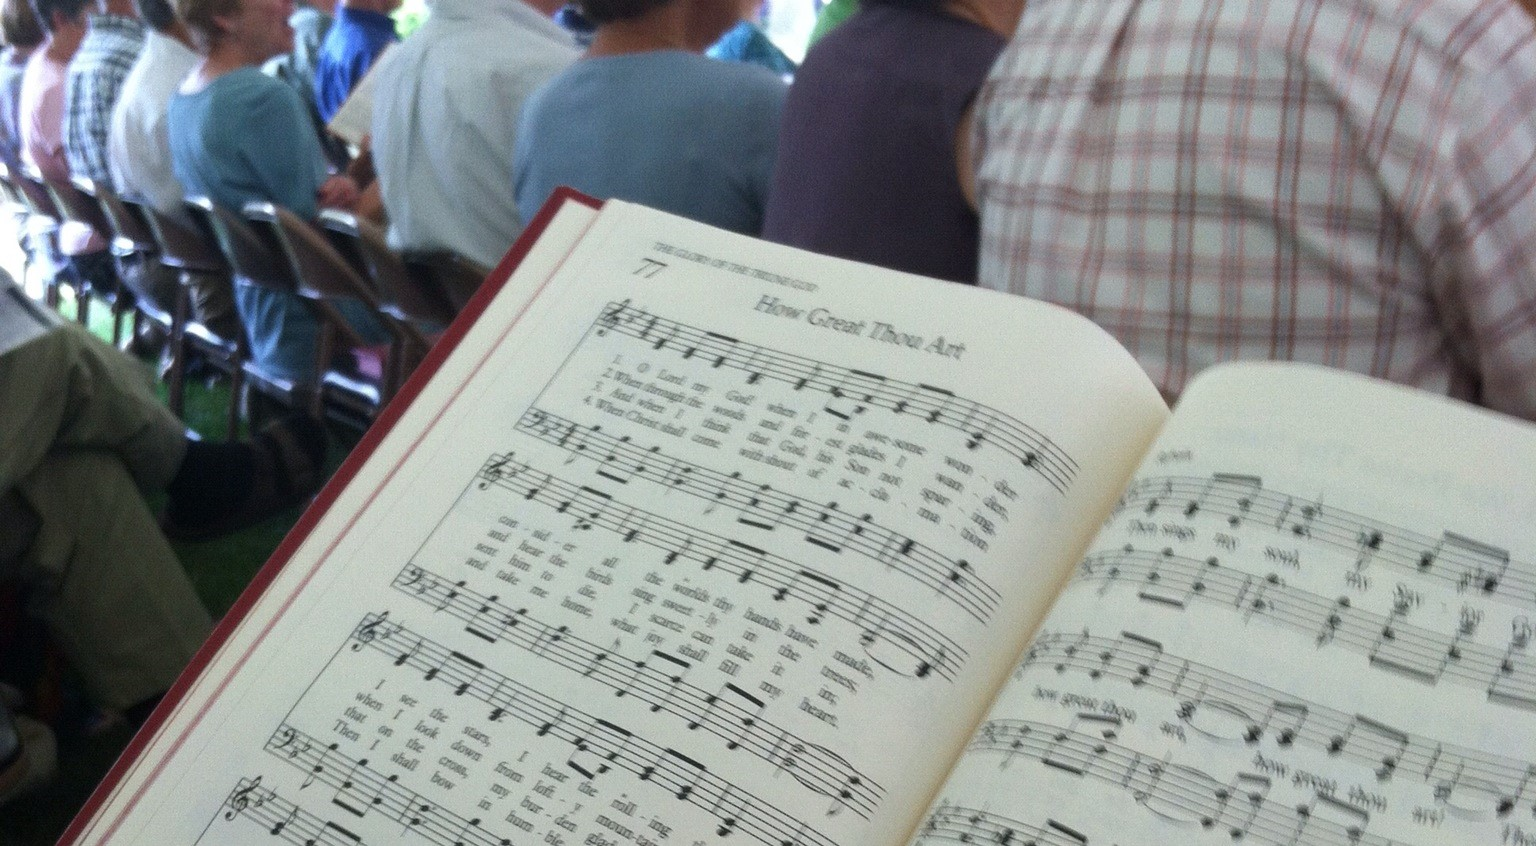 OUR WORSHIP ~ OUR HIGHEST PRIVILEGE & JOY